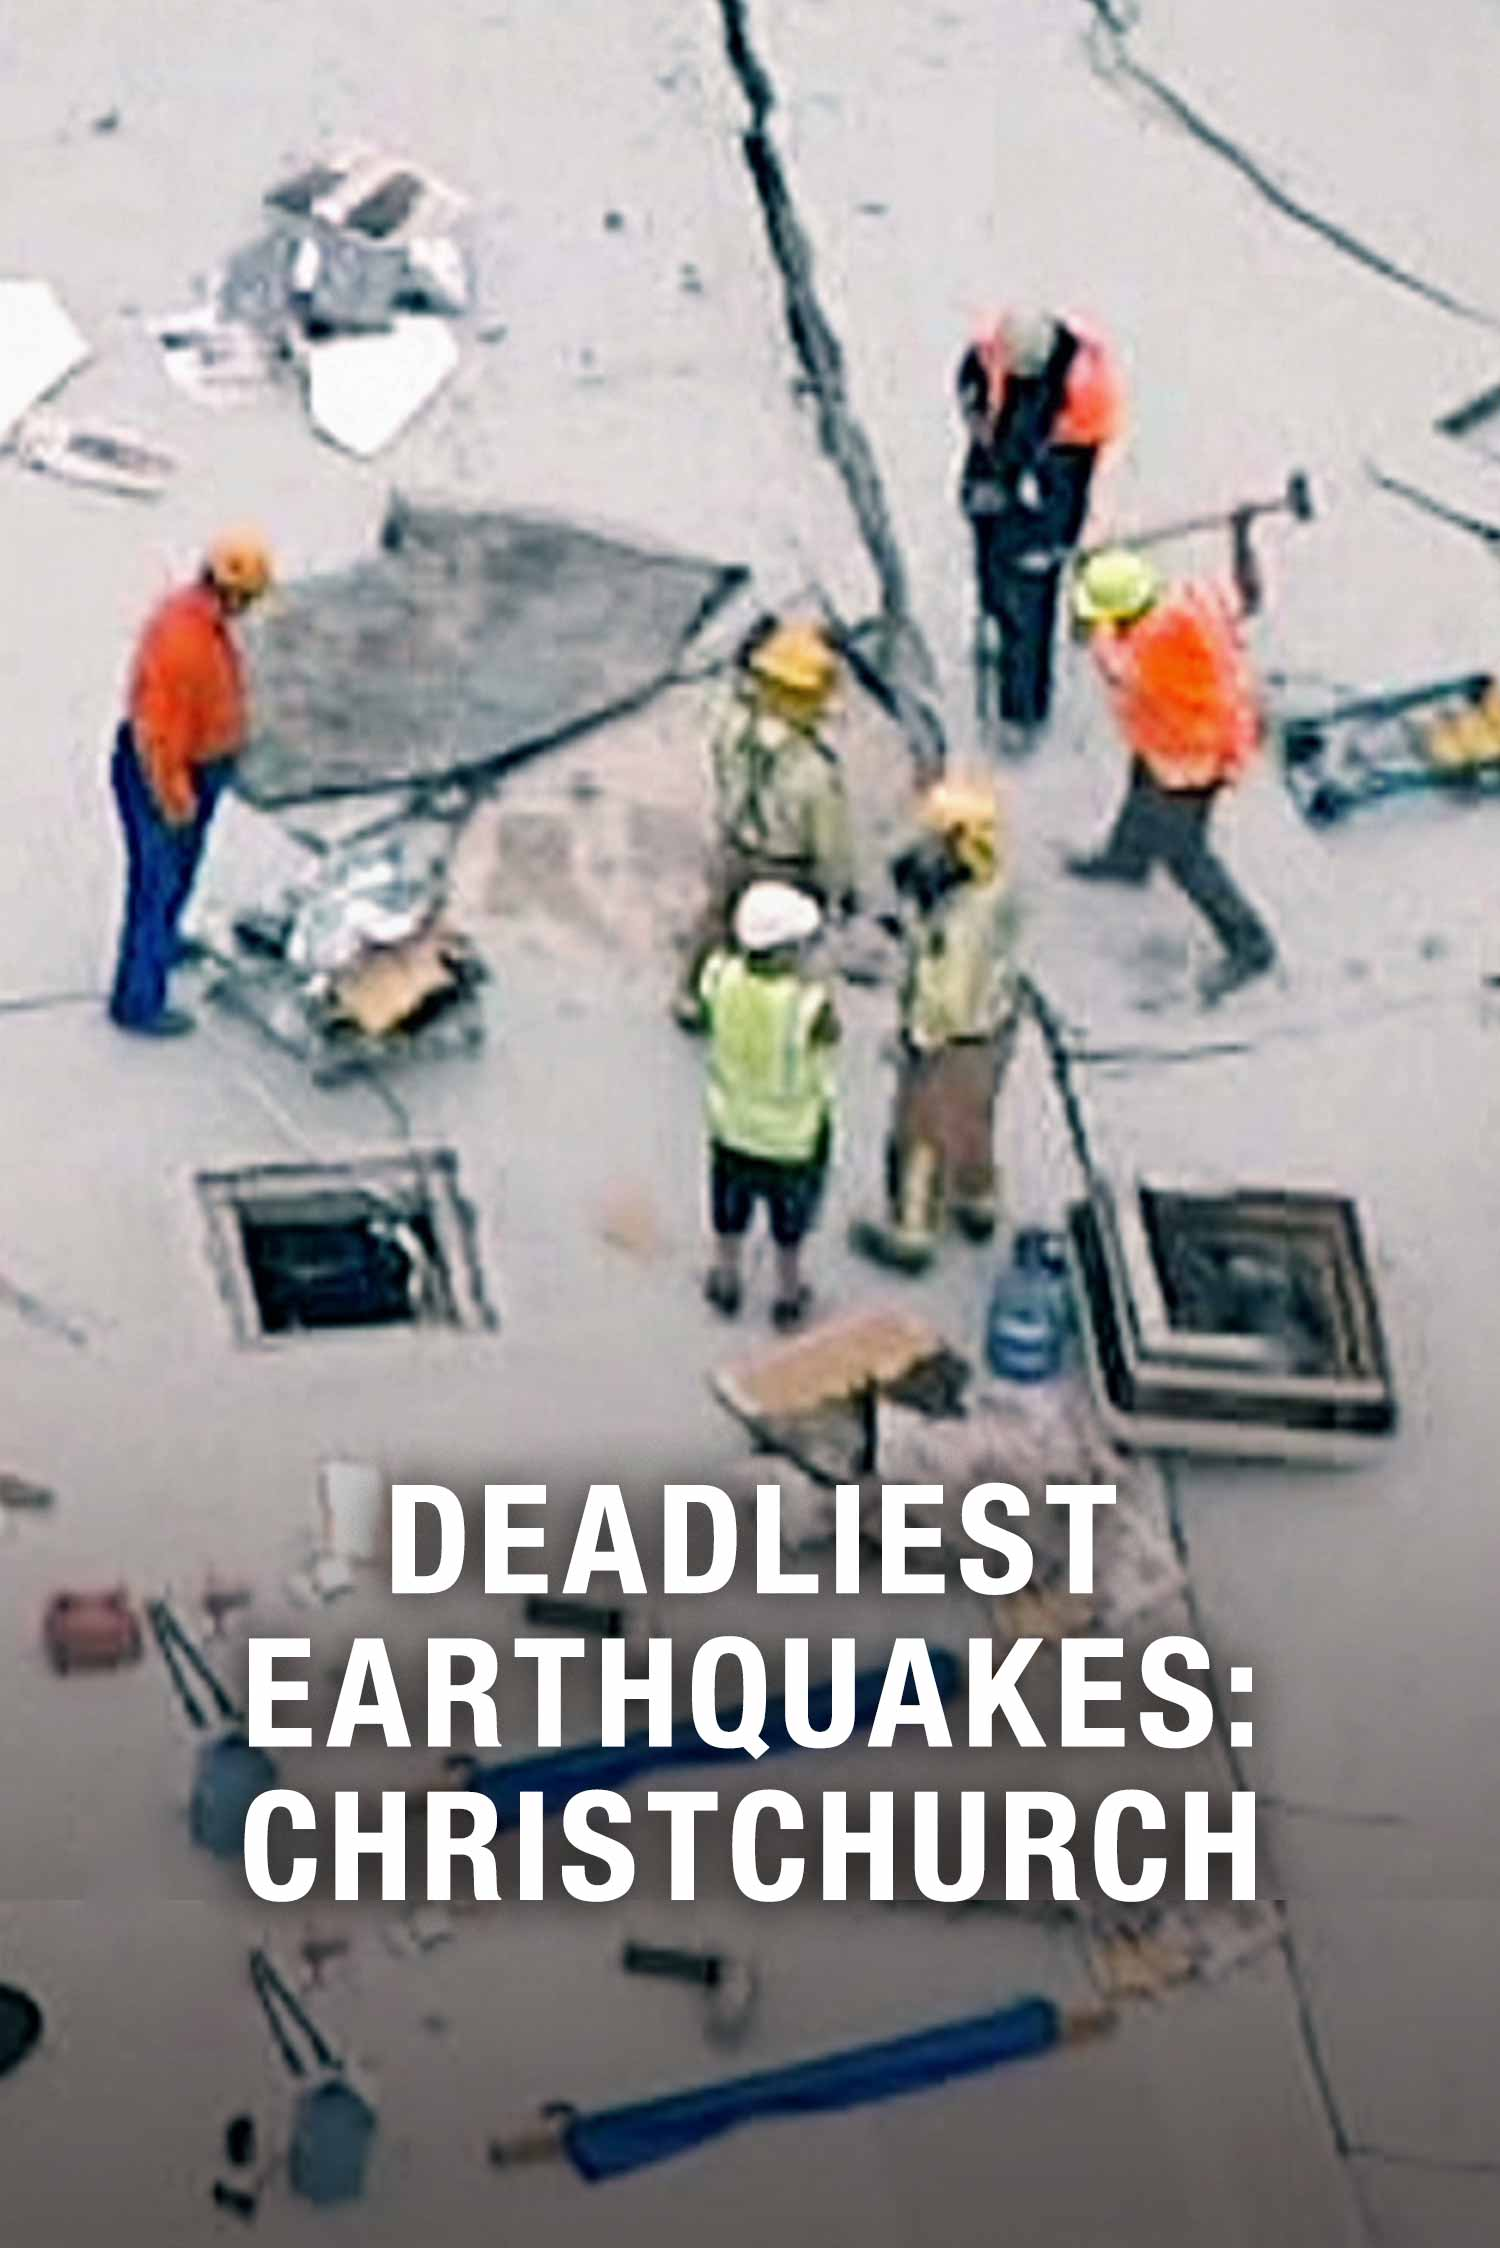 Deadliest Earthquakes: Christchurch